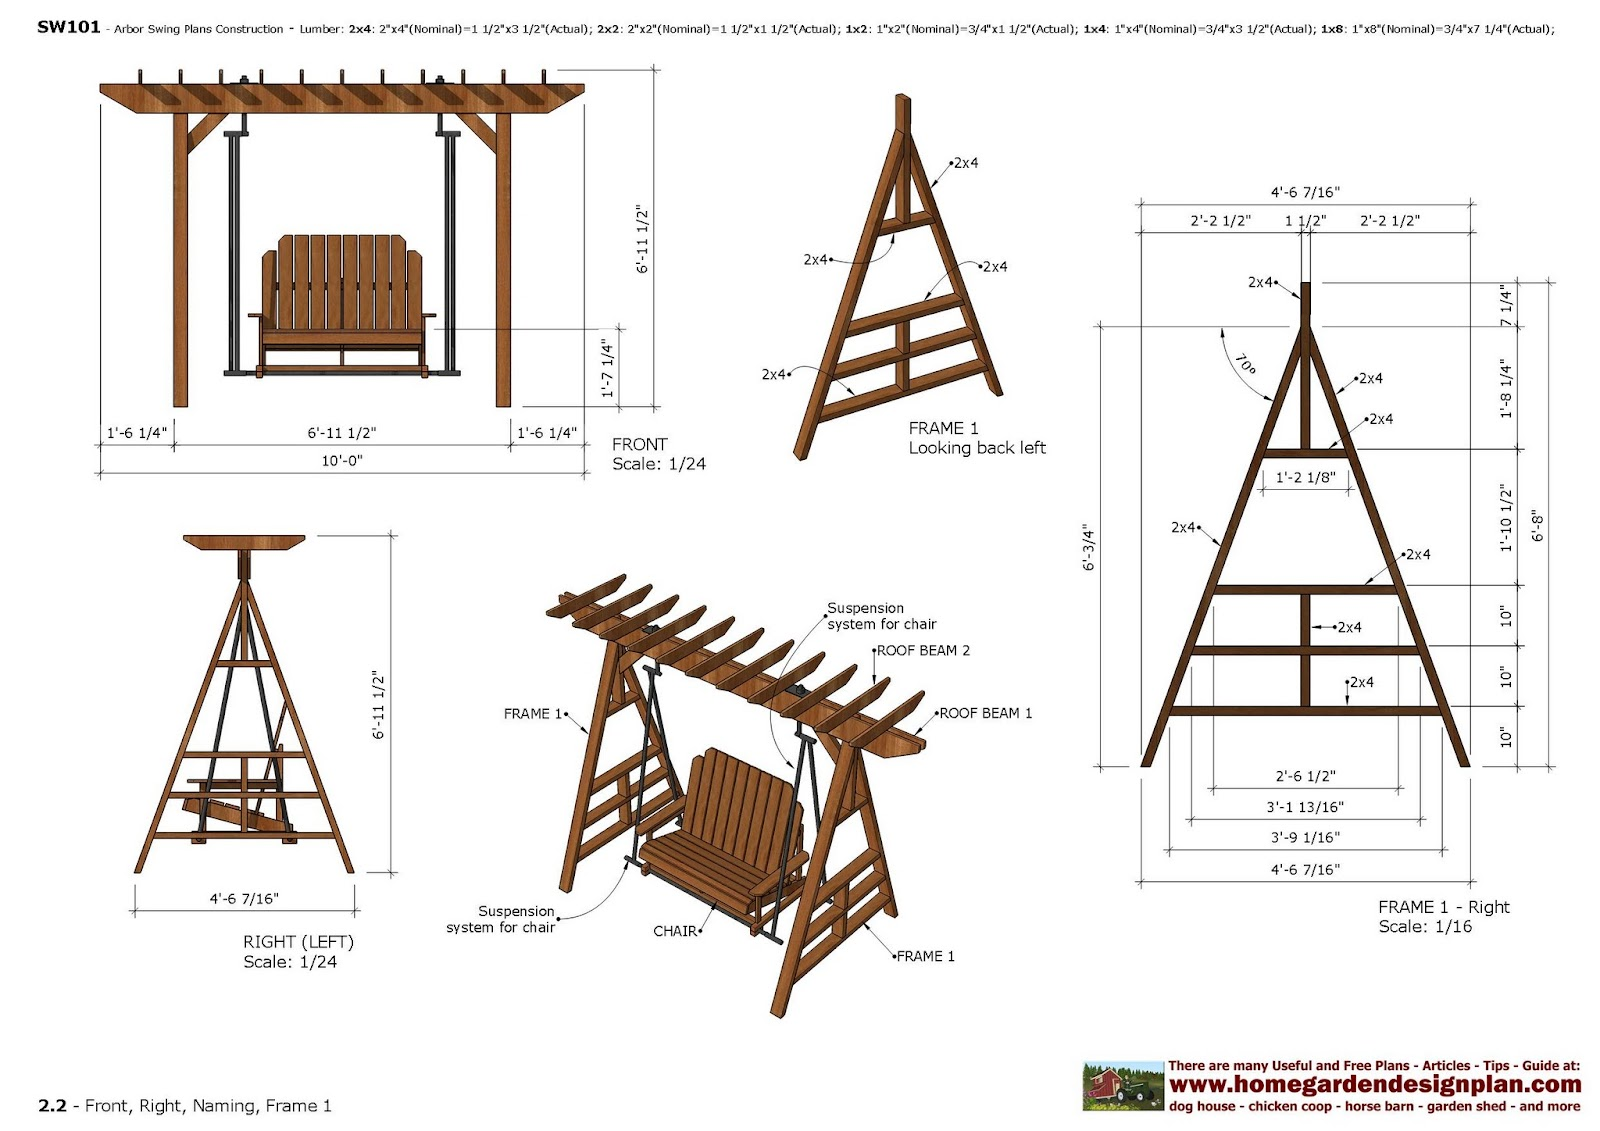 Home garden plans 2015 for Outdoor swing plans